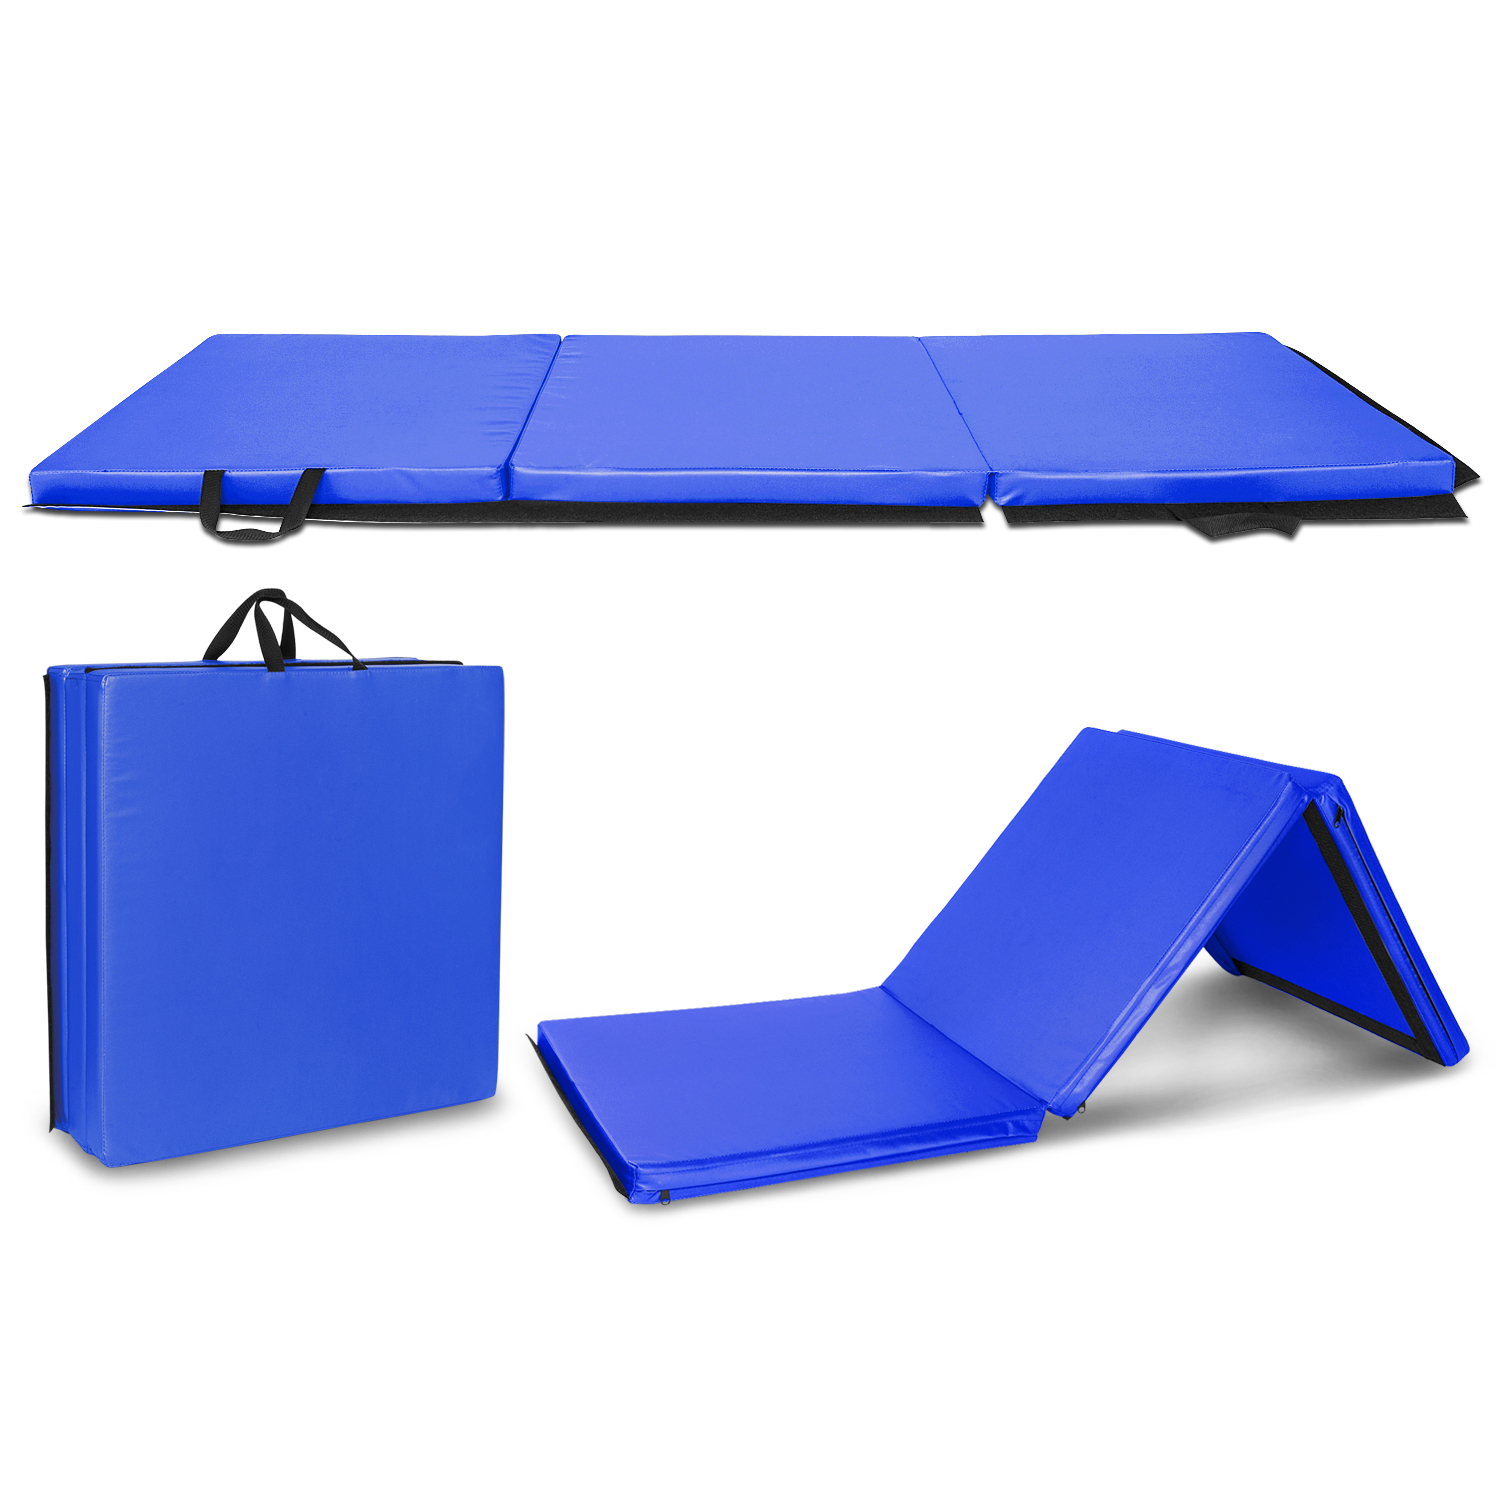 """Zimtown 6'x2'x2""""/ 4.5'x2'x1.2""""/ 10'x3.3'x4"""" Gymnastics Mat, Air Inflatable Tumbling Pad, Folding Exercise Aerobics Yoga Mats, with Hook & Loop Fasteners, for Stretching, Martial Arts, karate, MMA"""